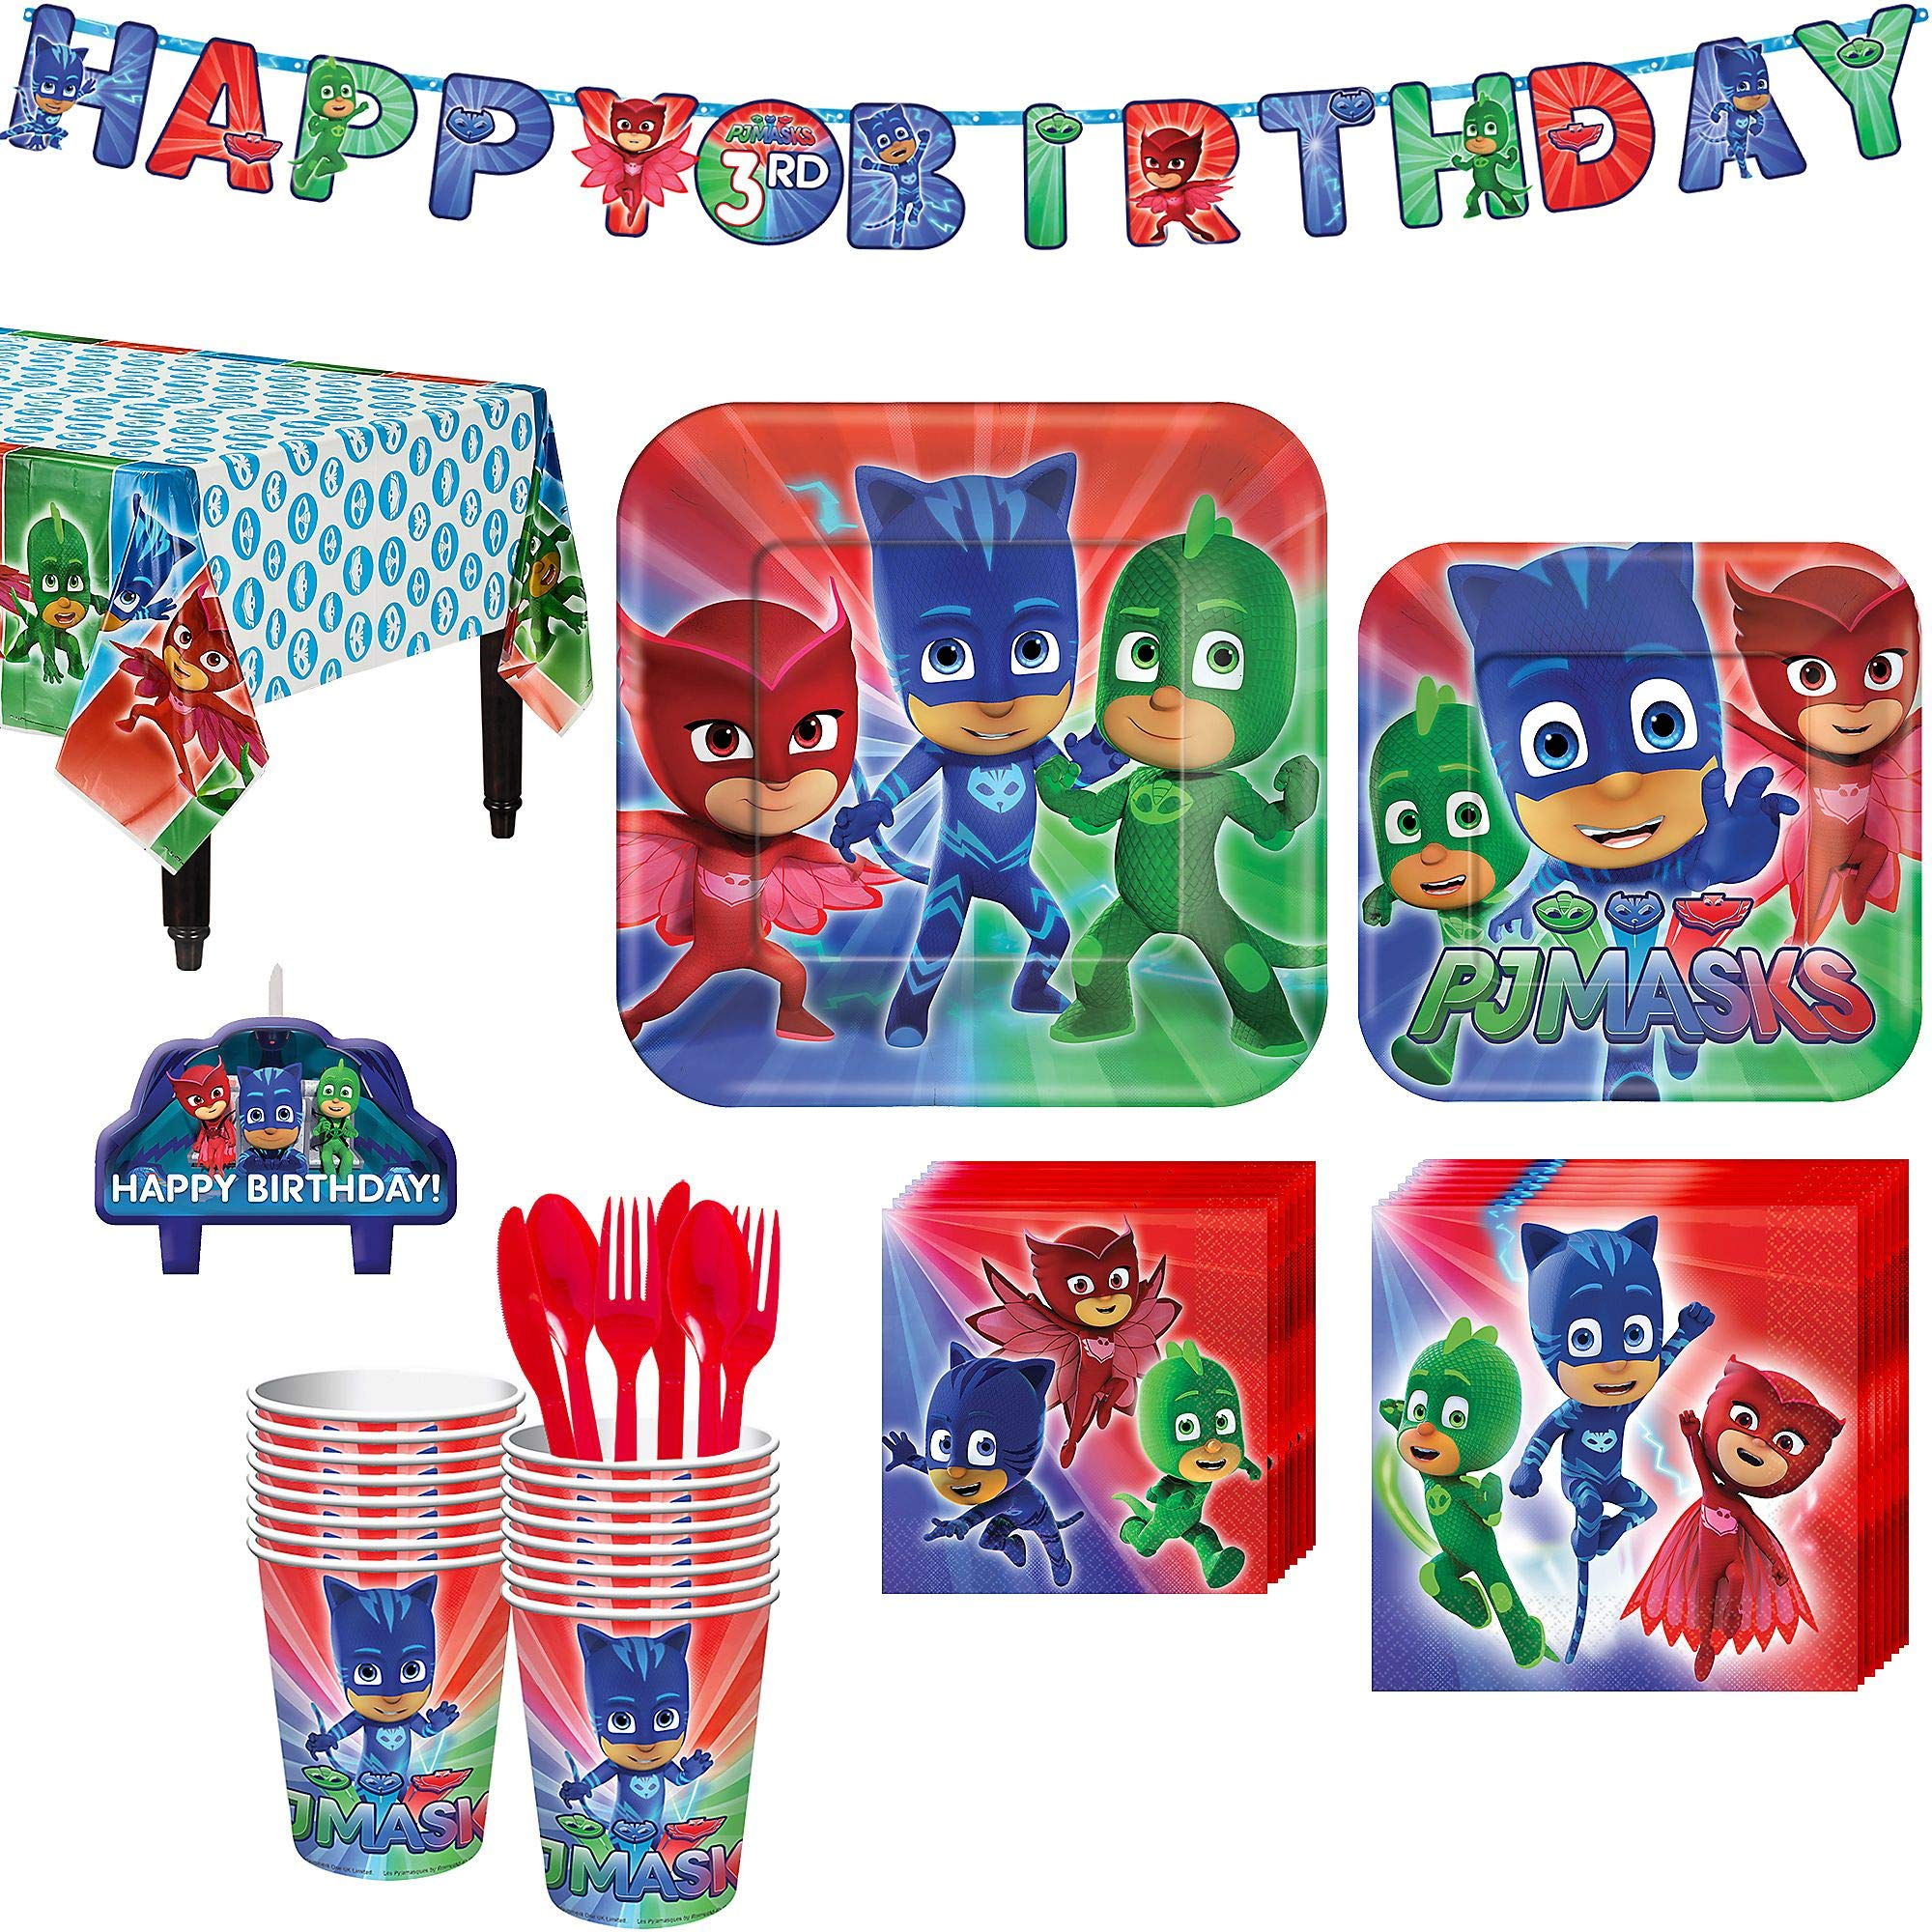 PJ Masks Birthday Party Kit, Includes Happy Birthday Banner and Birthday Candles, Serves 16, by Party City by Party City (Image #1)